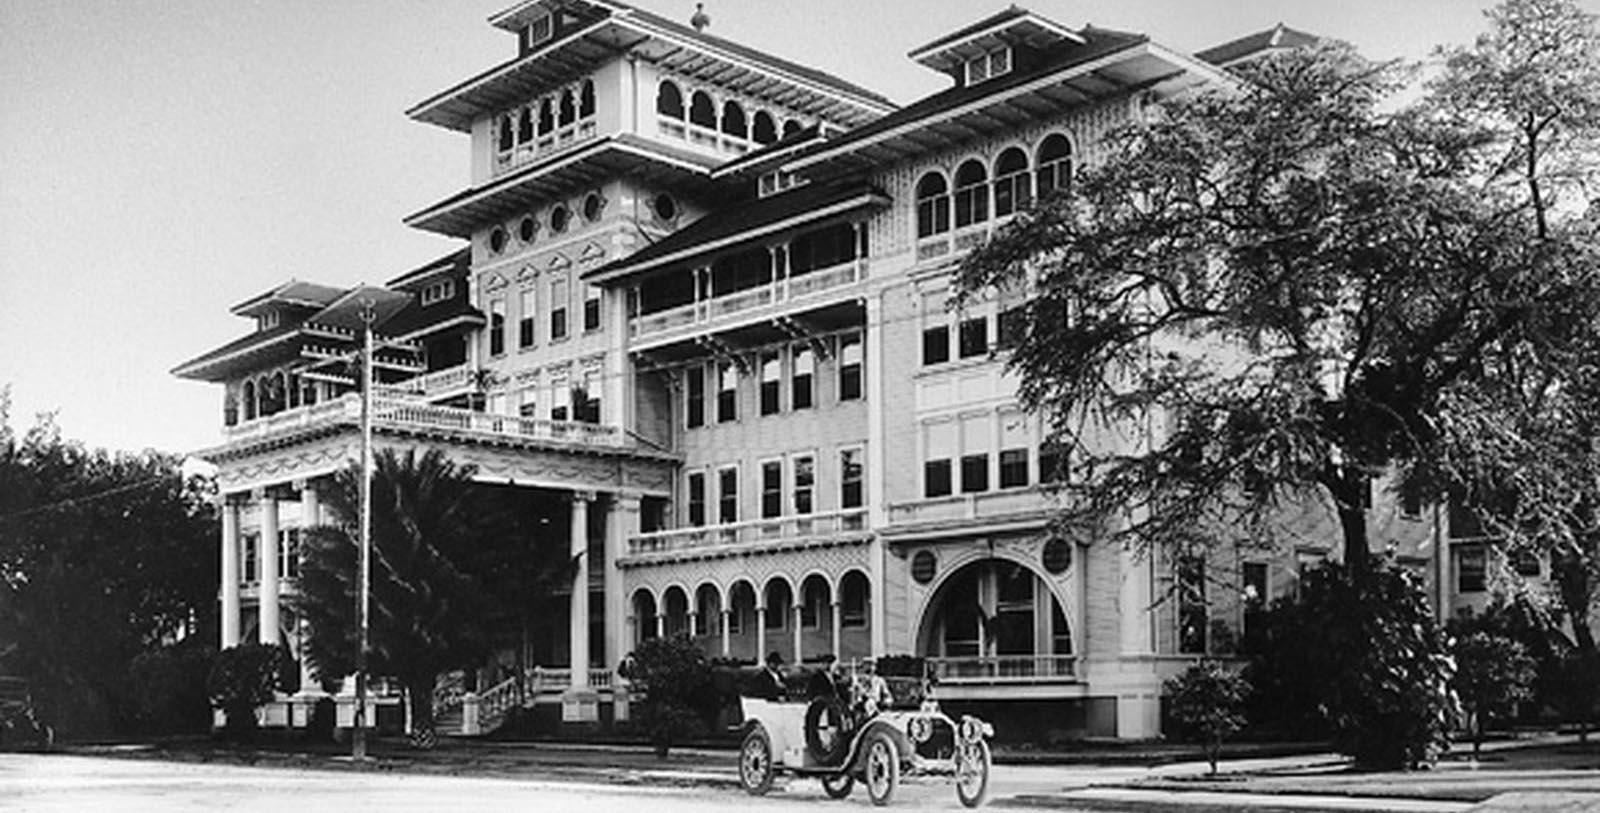 Image of Historic Exterior, Moana Surfrider, A Westin Resort & Spa, Honolulu, Hawaii, 1901, Member of Historic Hotels of America, Discover